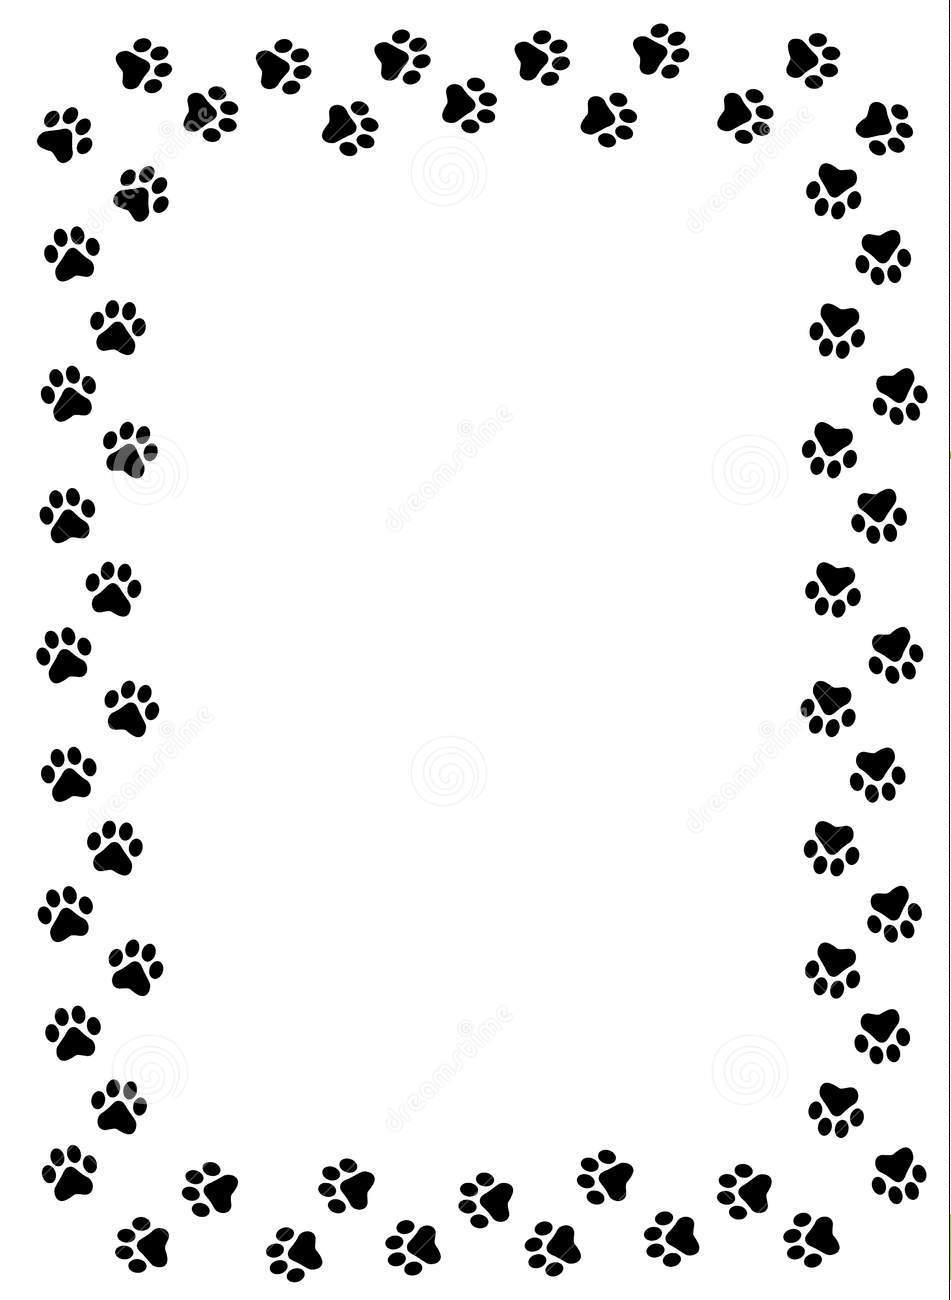 cat paw clipart hd dog paw border clipart cats wallpaper hd image 951x1300